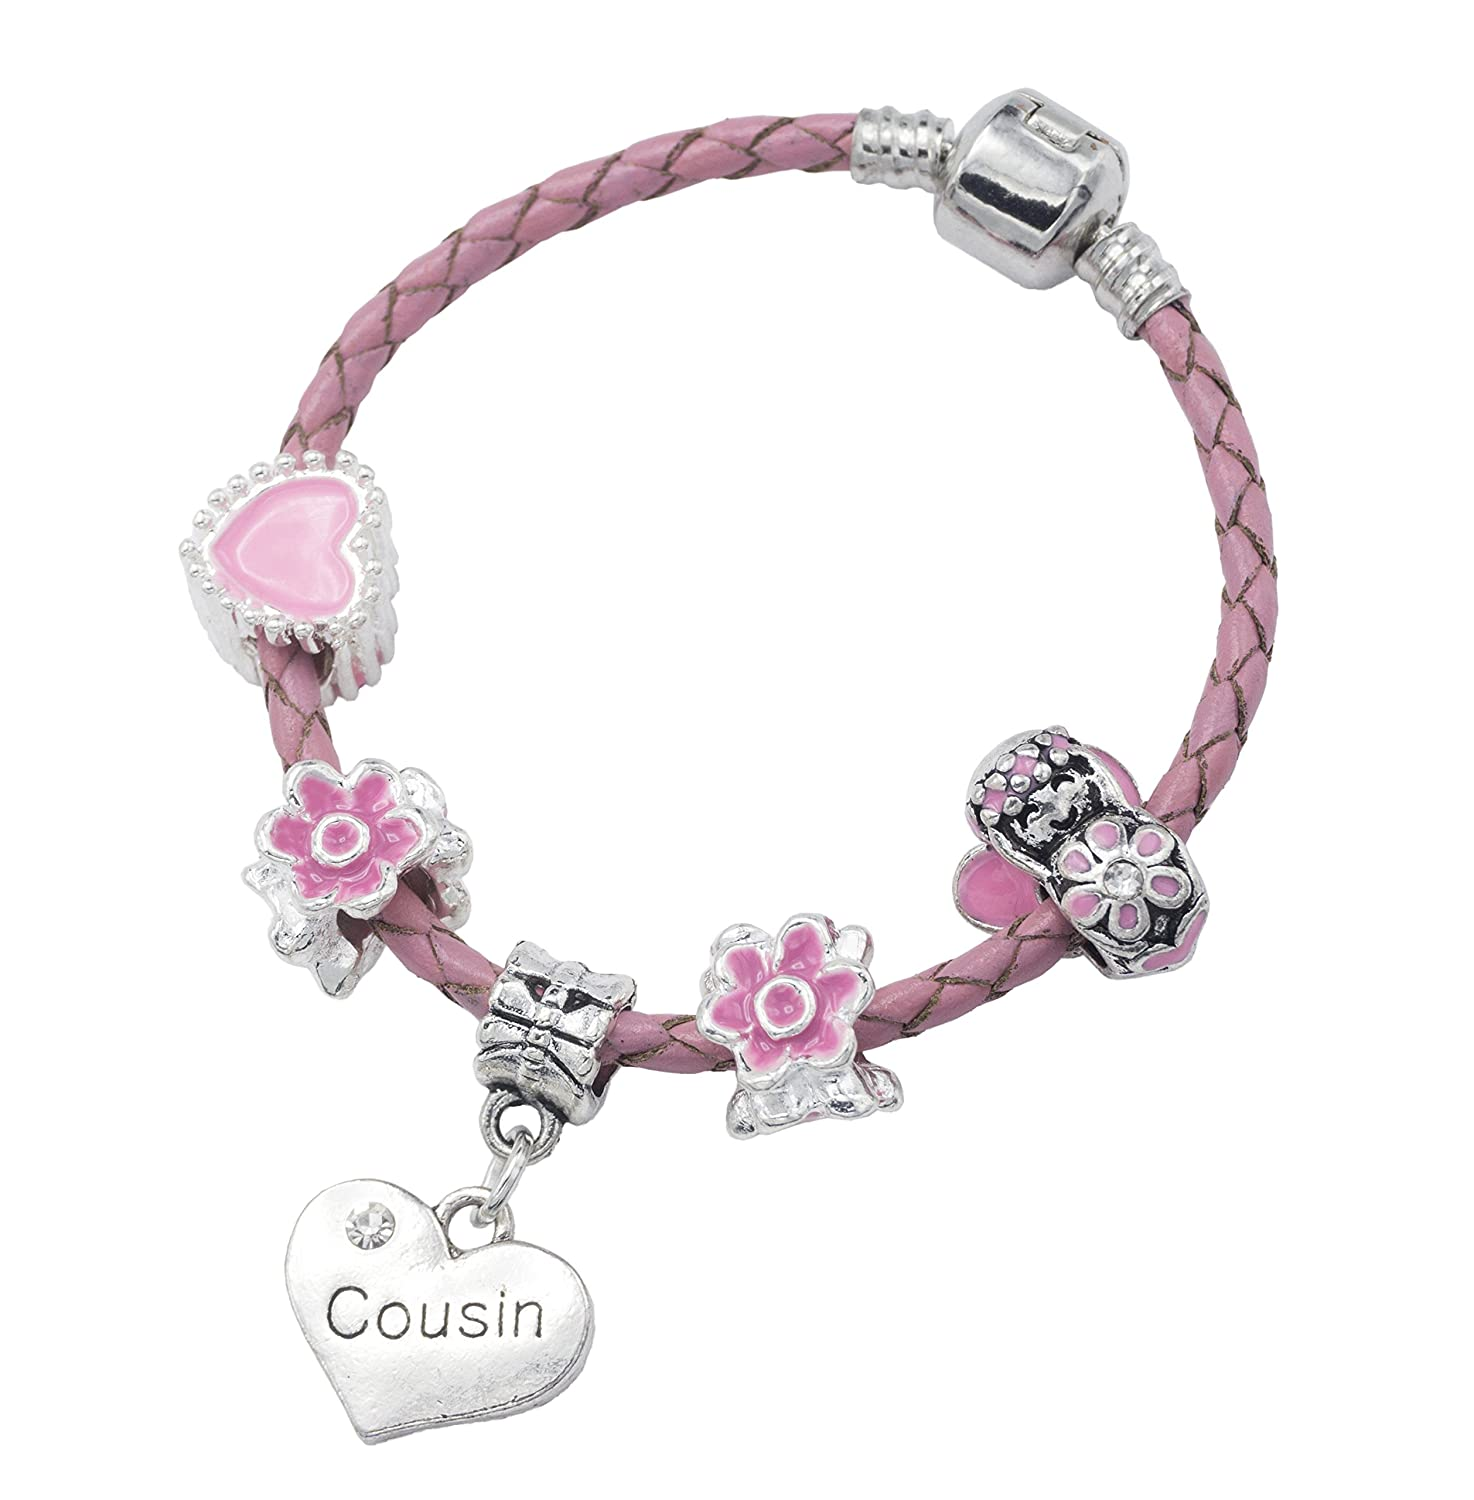 'Cousin' Pink Leather Charm Bracelet for Girls Presented in High Quality Gift Pouch Jewellery Hut BRPNKLTCOUSIN